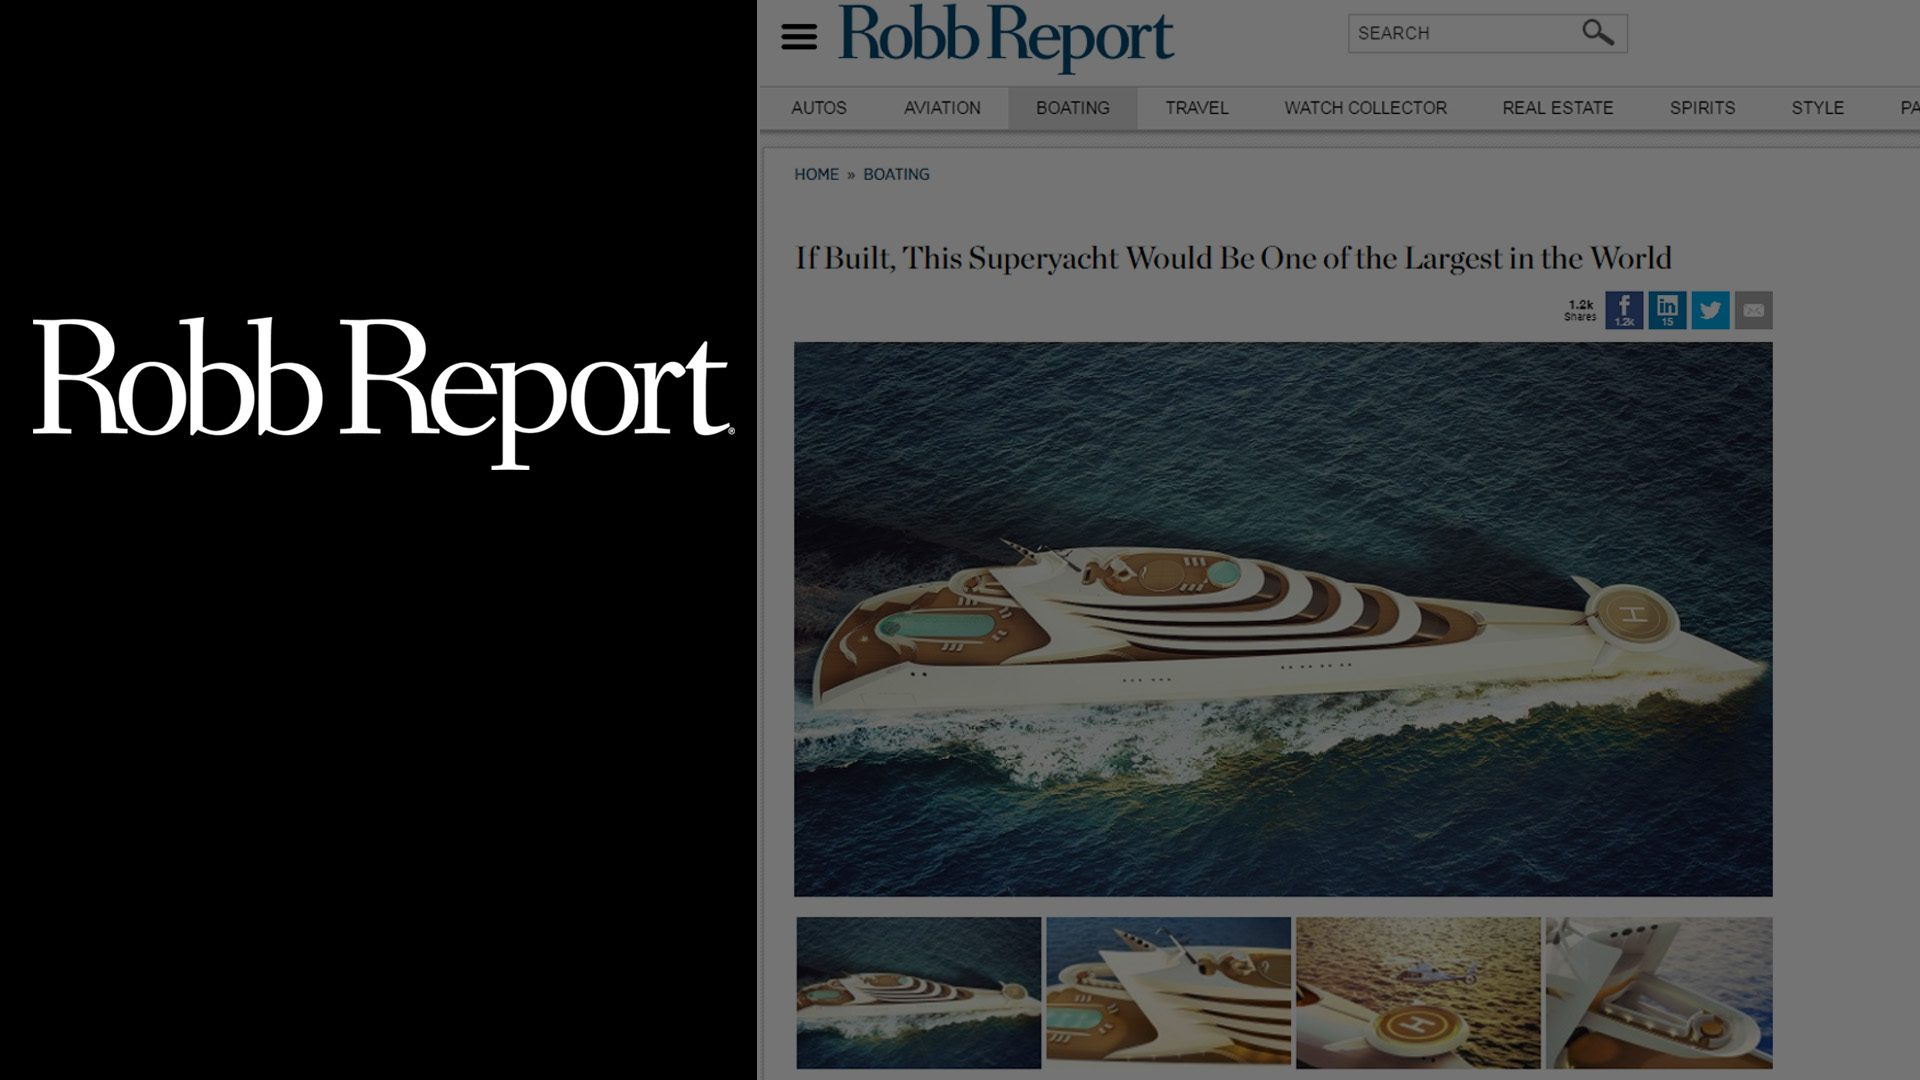 Superyacht concept L'Amage designed by Hamid Bekradi of HBD Studios, featured on Robb Report magazine